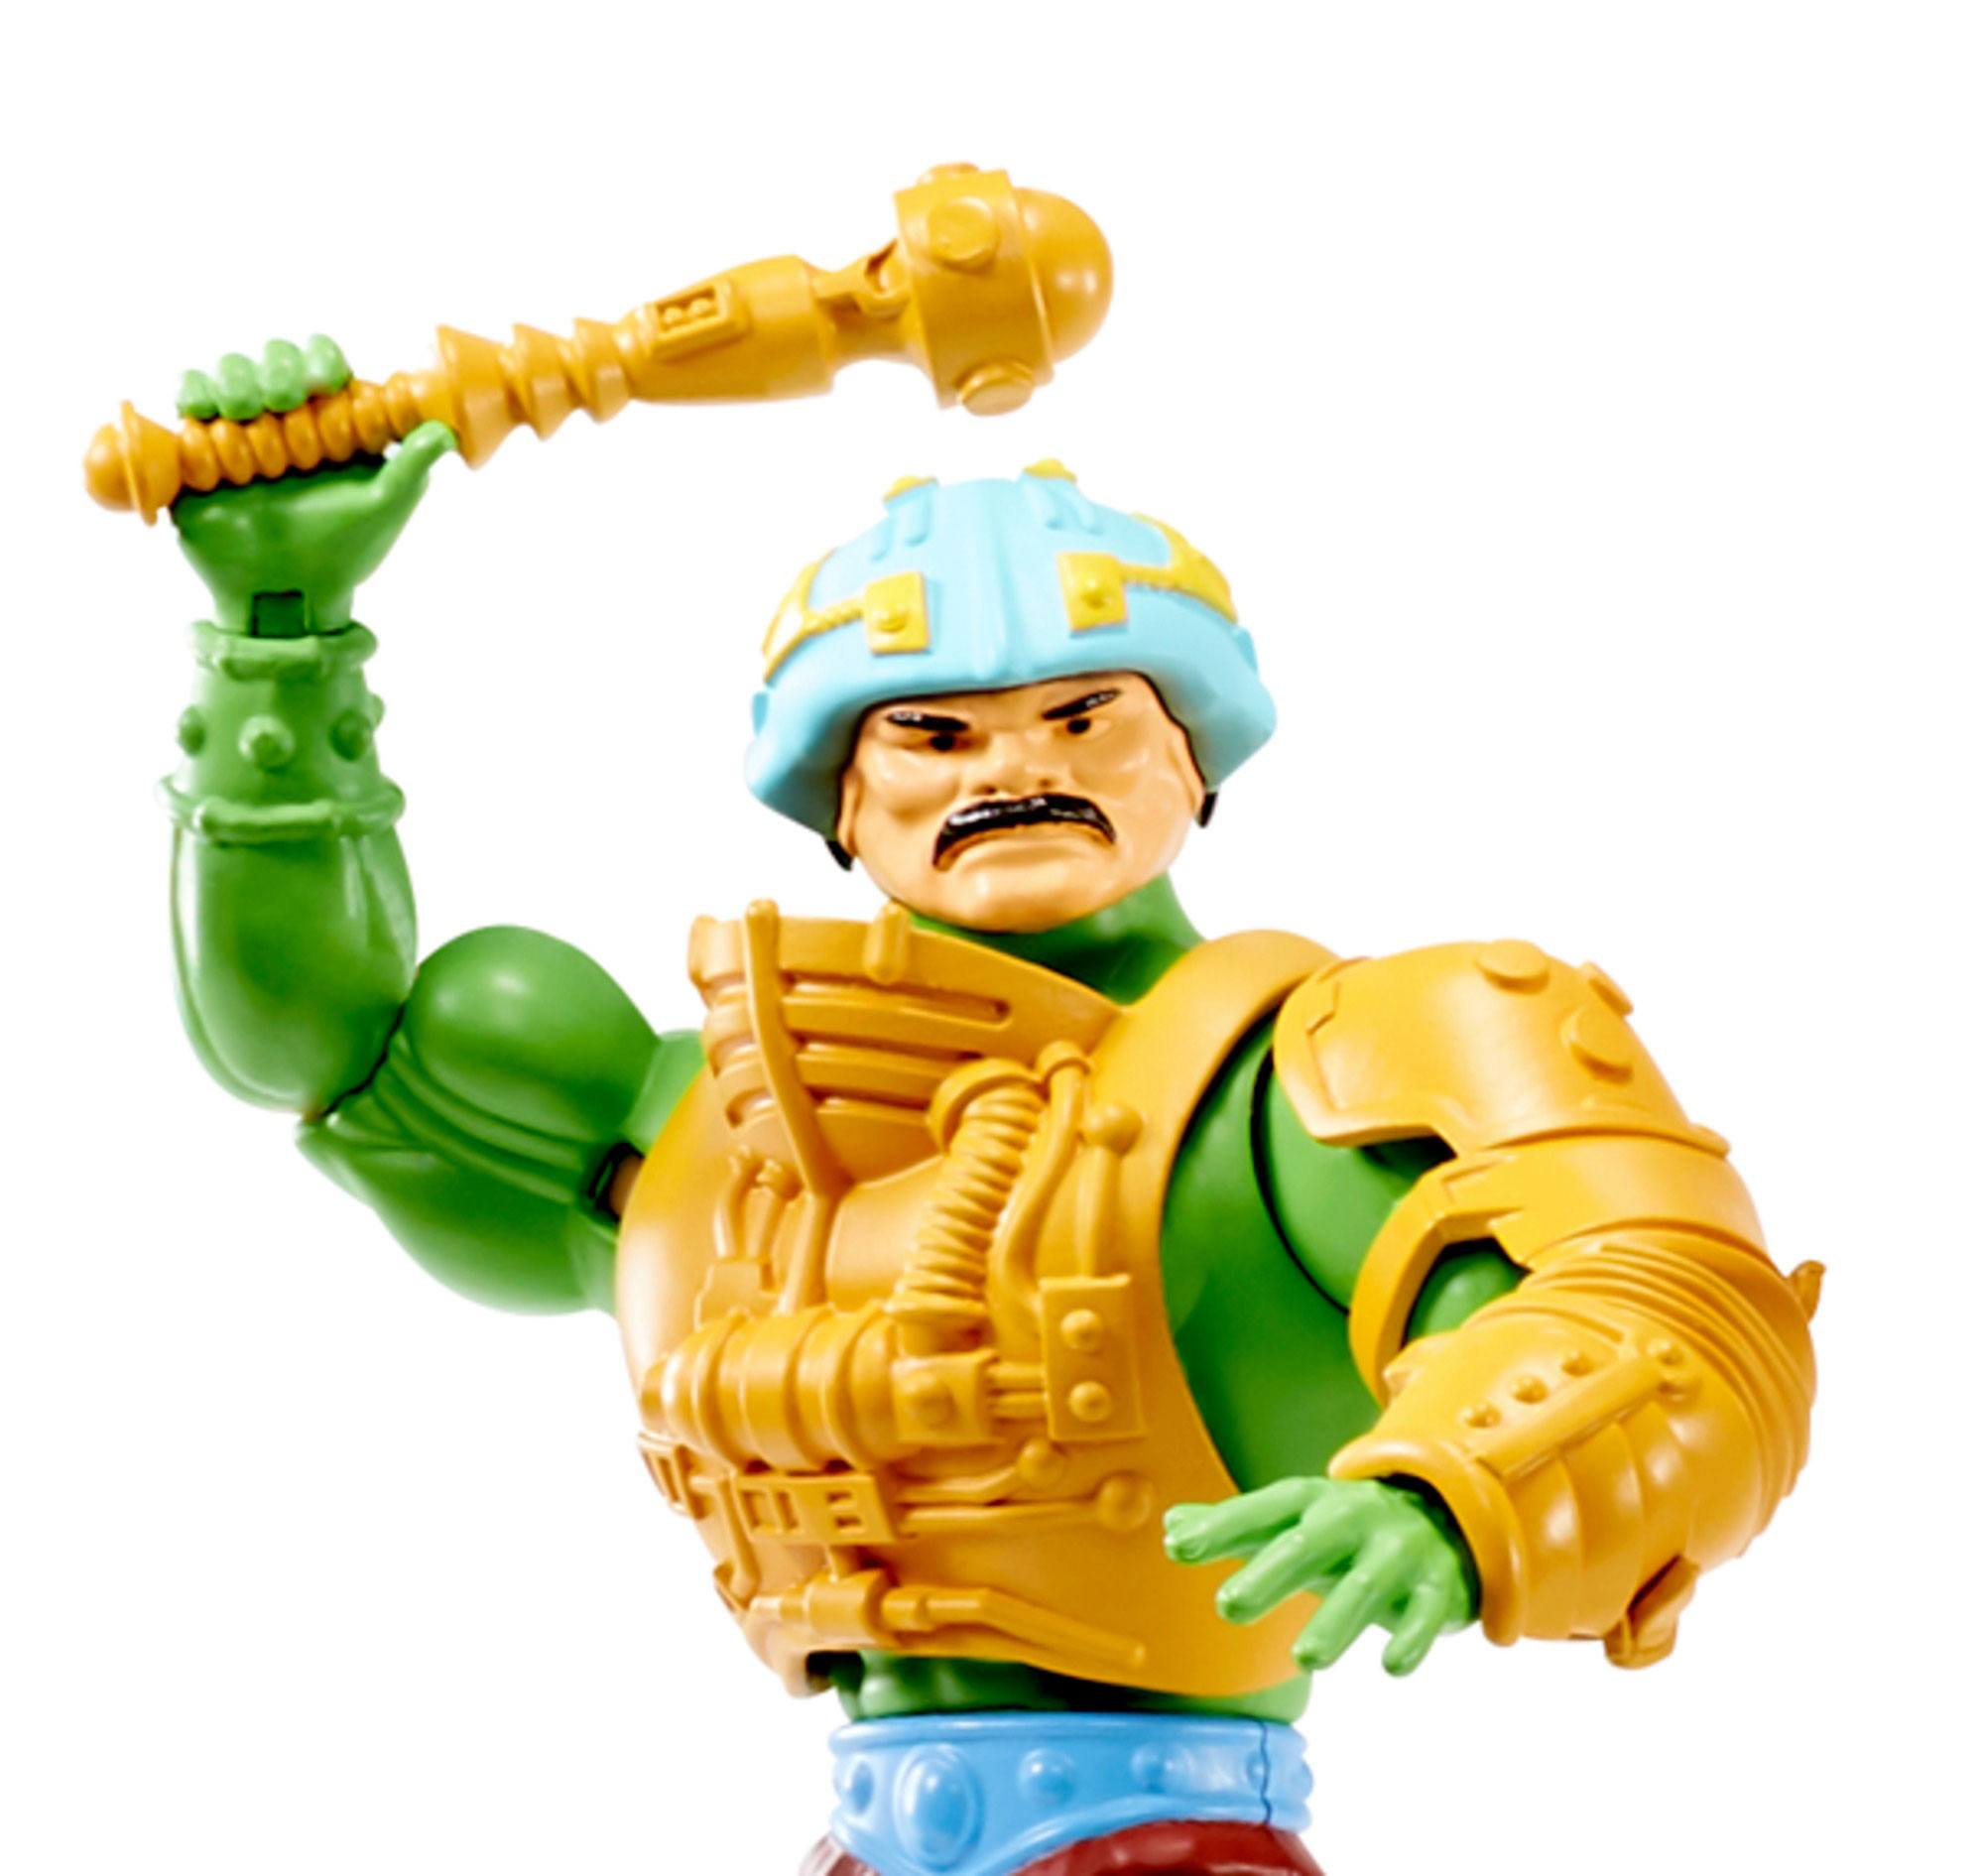 New for 20 Masters of the Universe Origins Actionfigur 2020 Man-At-Arms 14 cm MATTGNN89 0887961875379